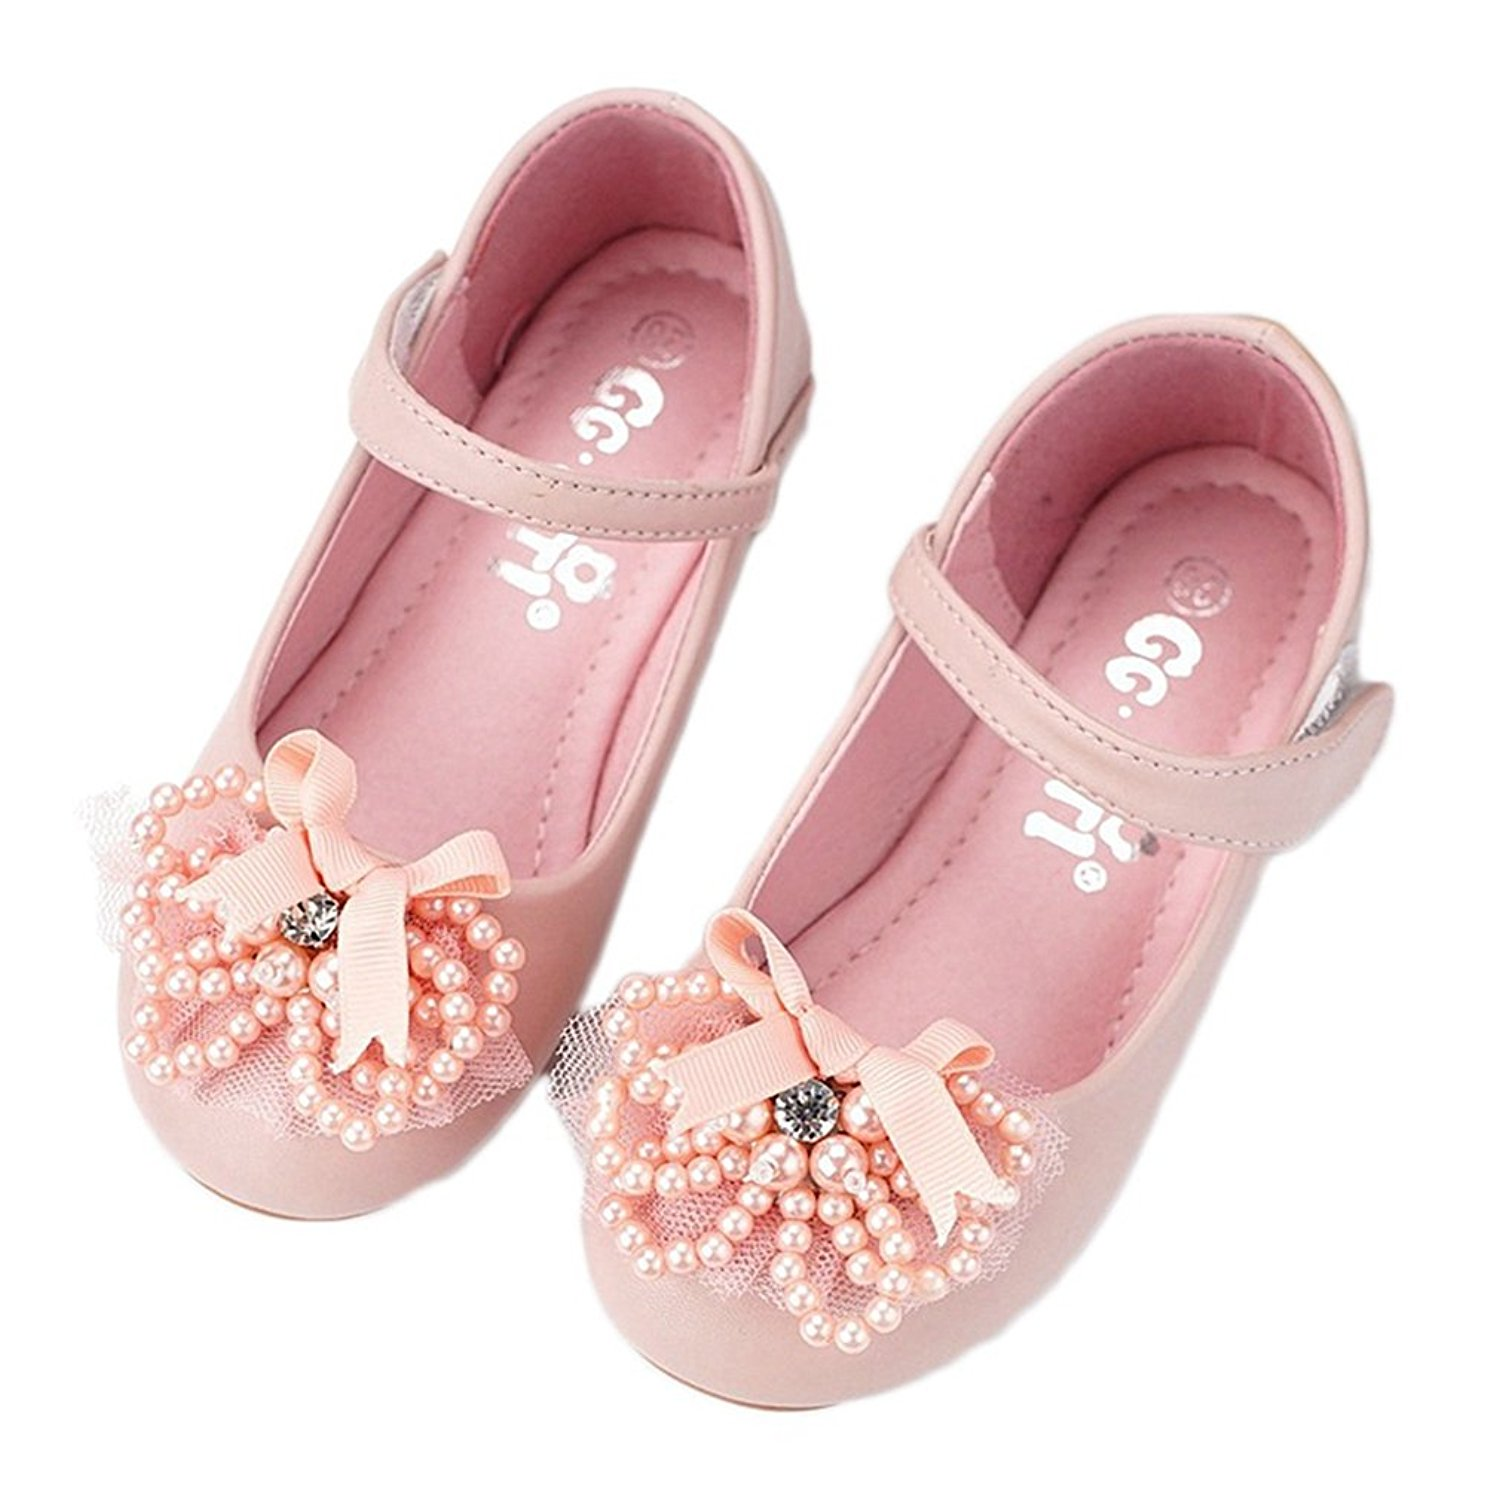 d29a37a70a9e Get Quotations · CYBLING Kids Ballet Flats Girls School Shoes Mary Jane  Wedding Party Princess Dress Shoes (Toddler